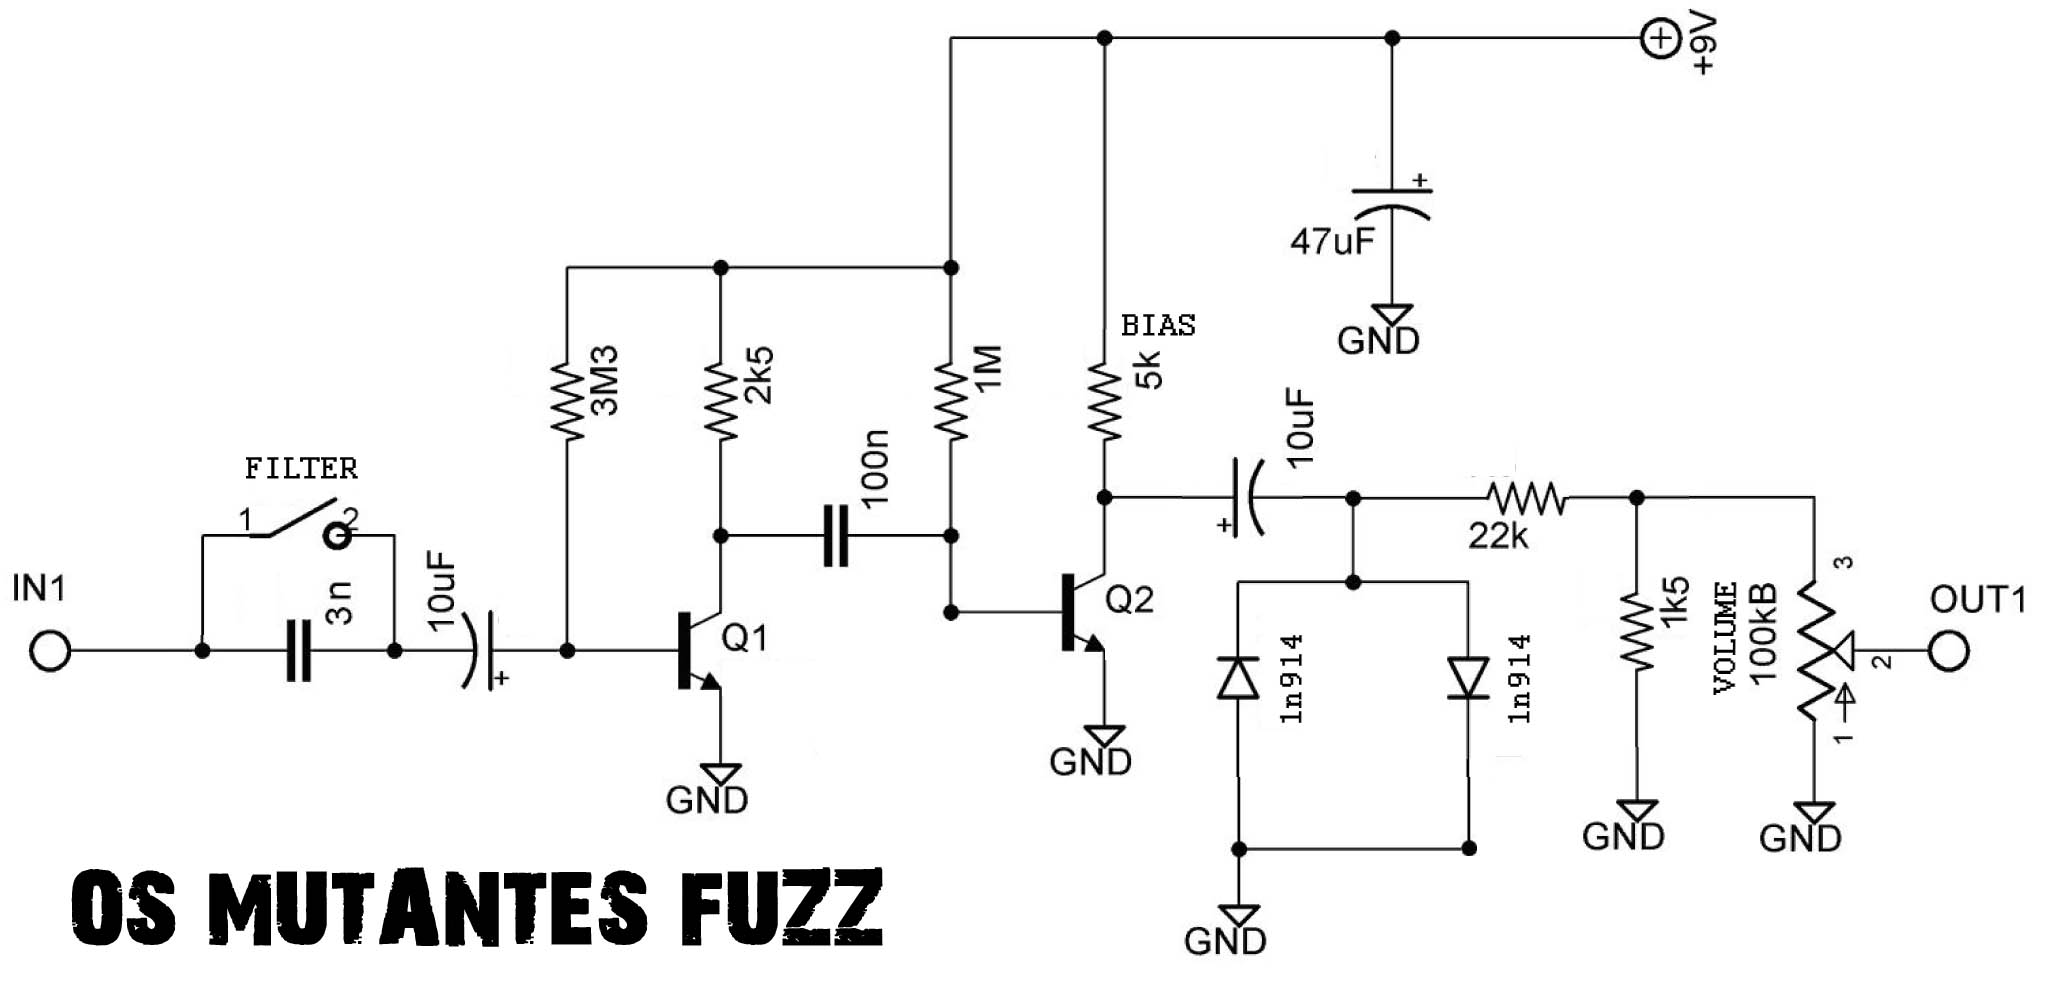 os_mutantes_fuzz_sch guitar fx layouts ehx satisfaction fuzz fuzz pedal wiring diagram at reclaimingppi.co